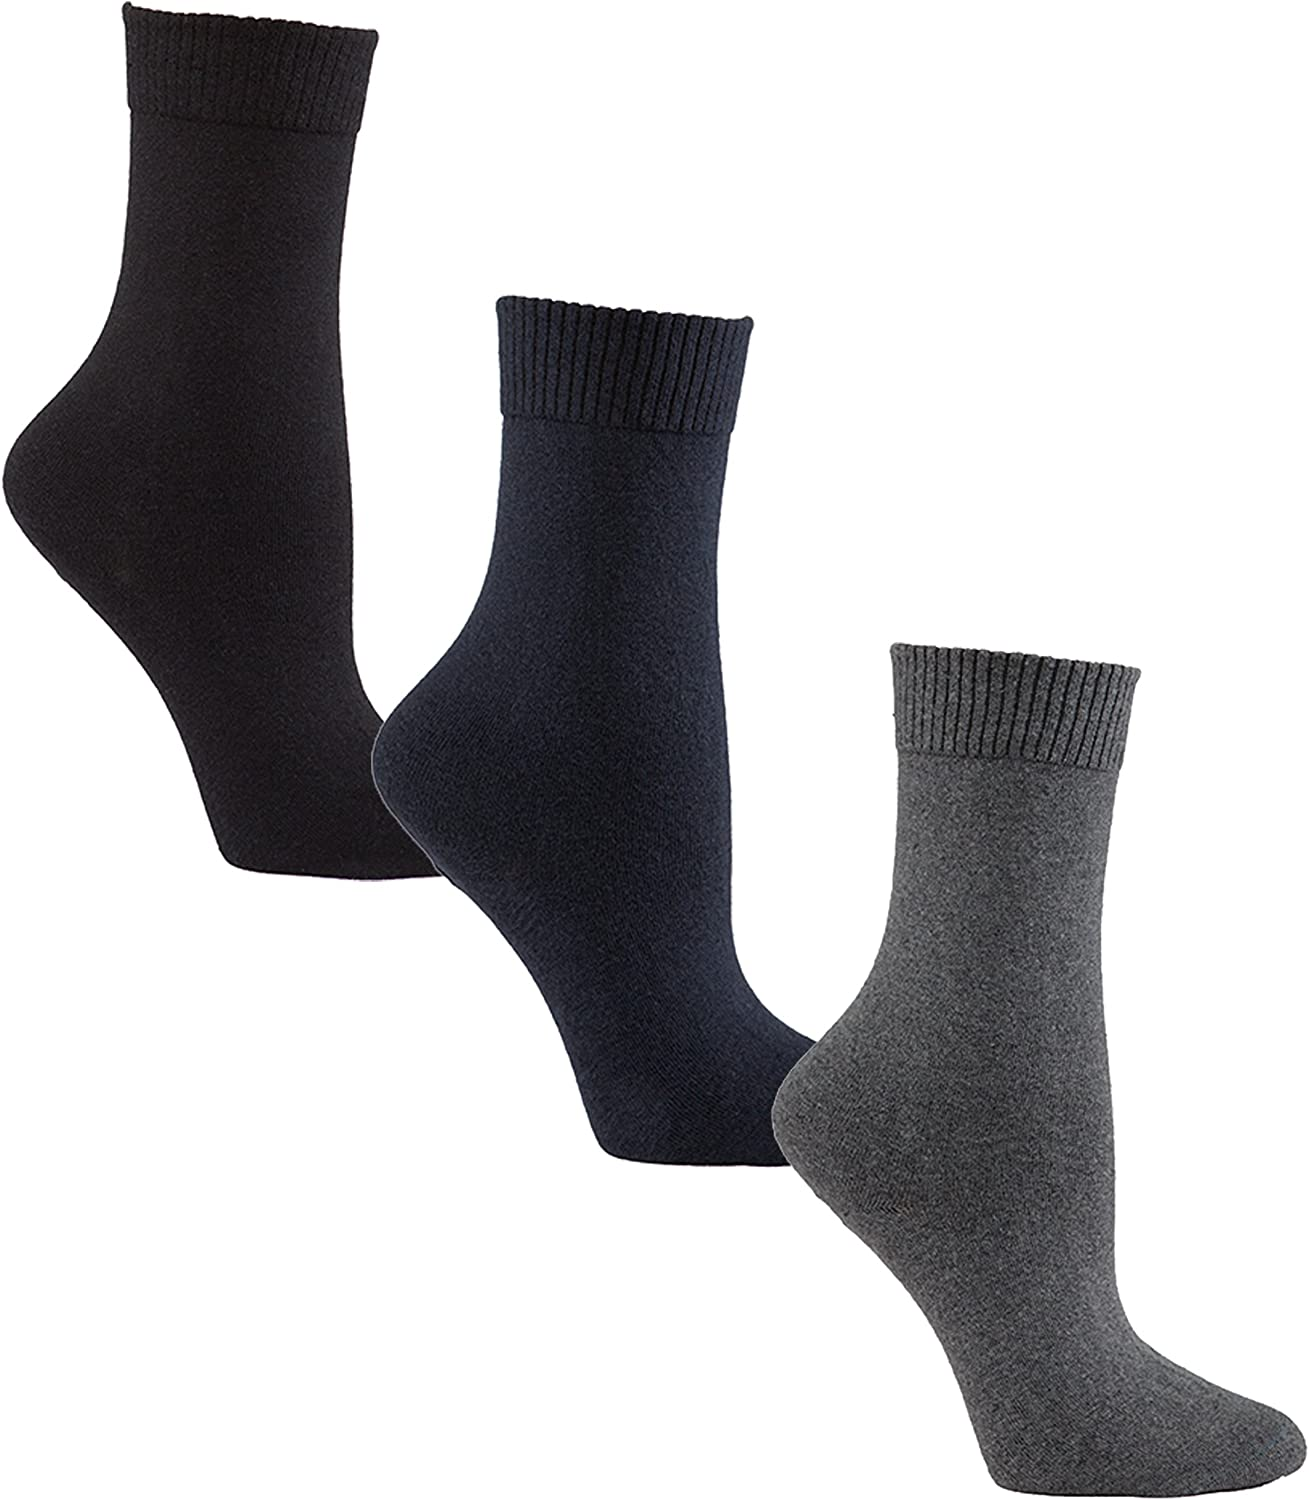 Diabetic Socks for Women by Sugar Free Sox - Maximize Circulation & Comfort - Womens Sock Size 9-11 - Black/Navy/Grey Crew Assorted 3 Pack